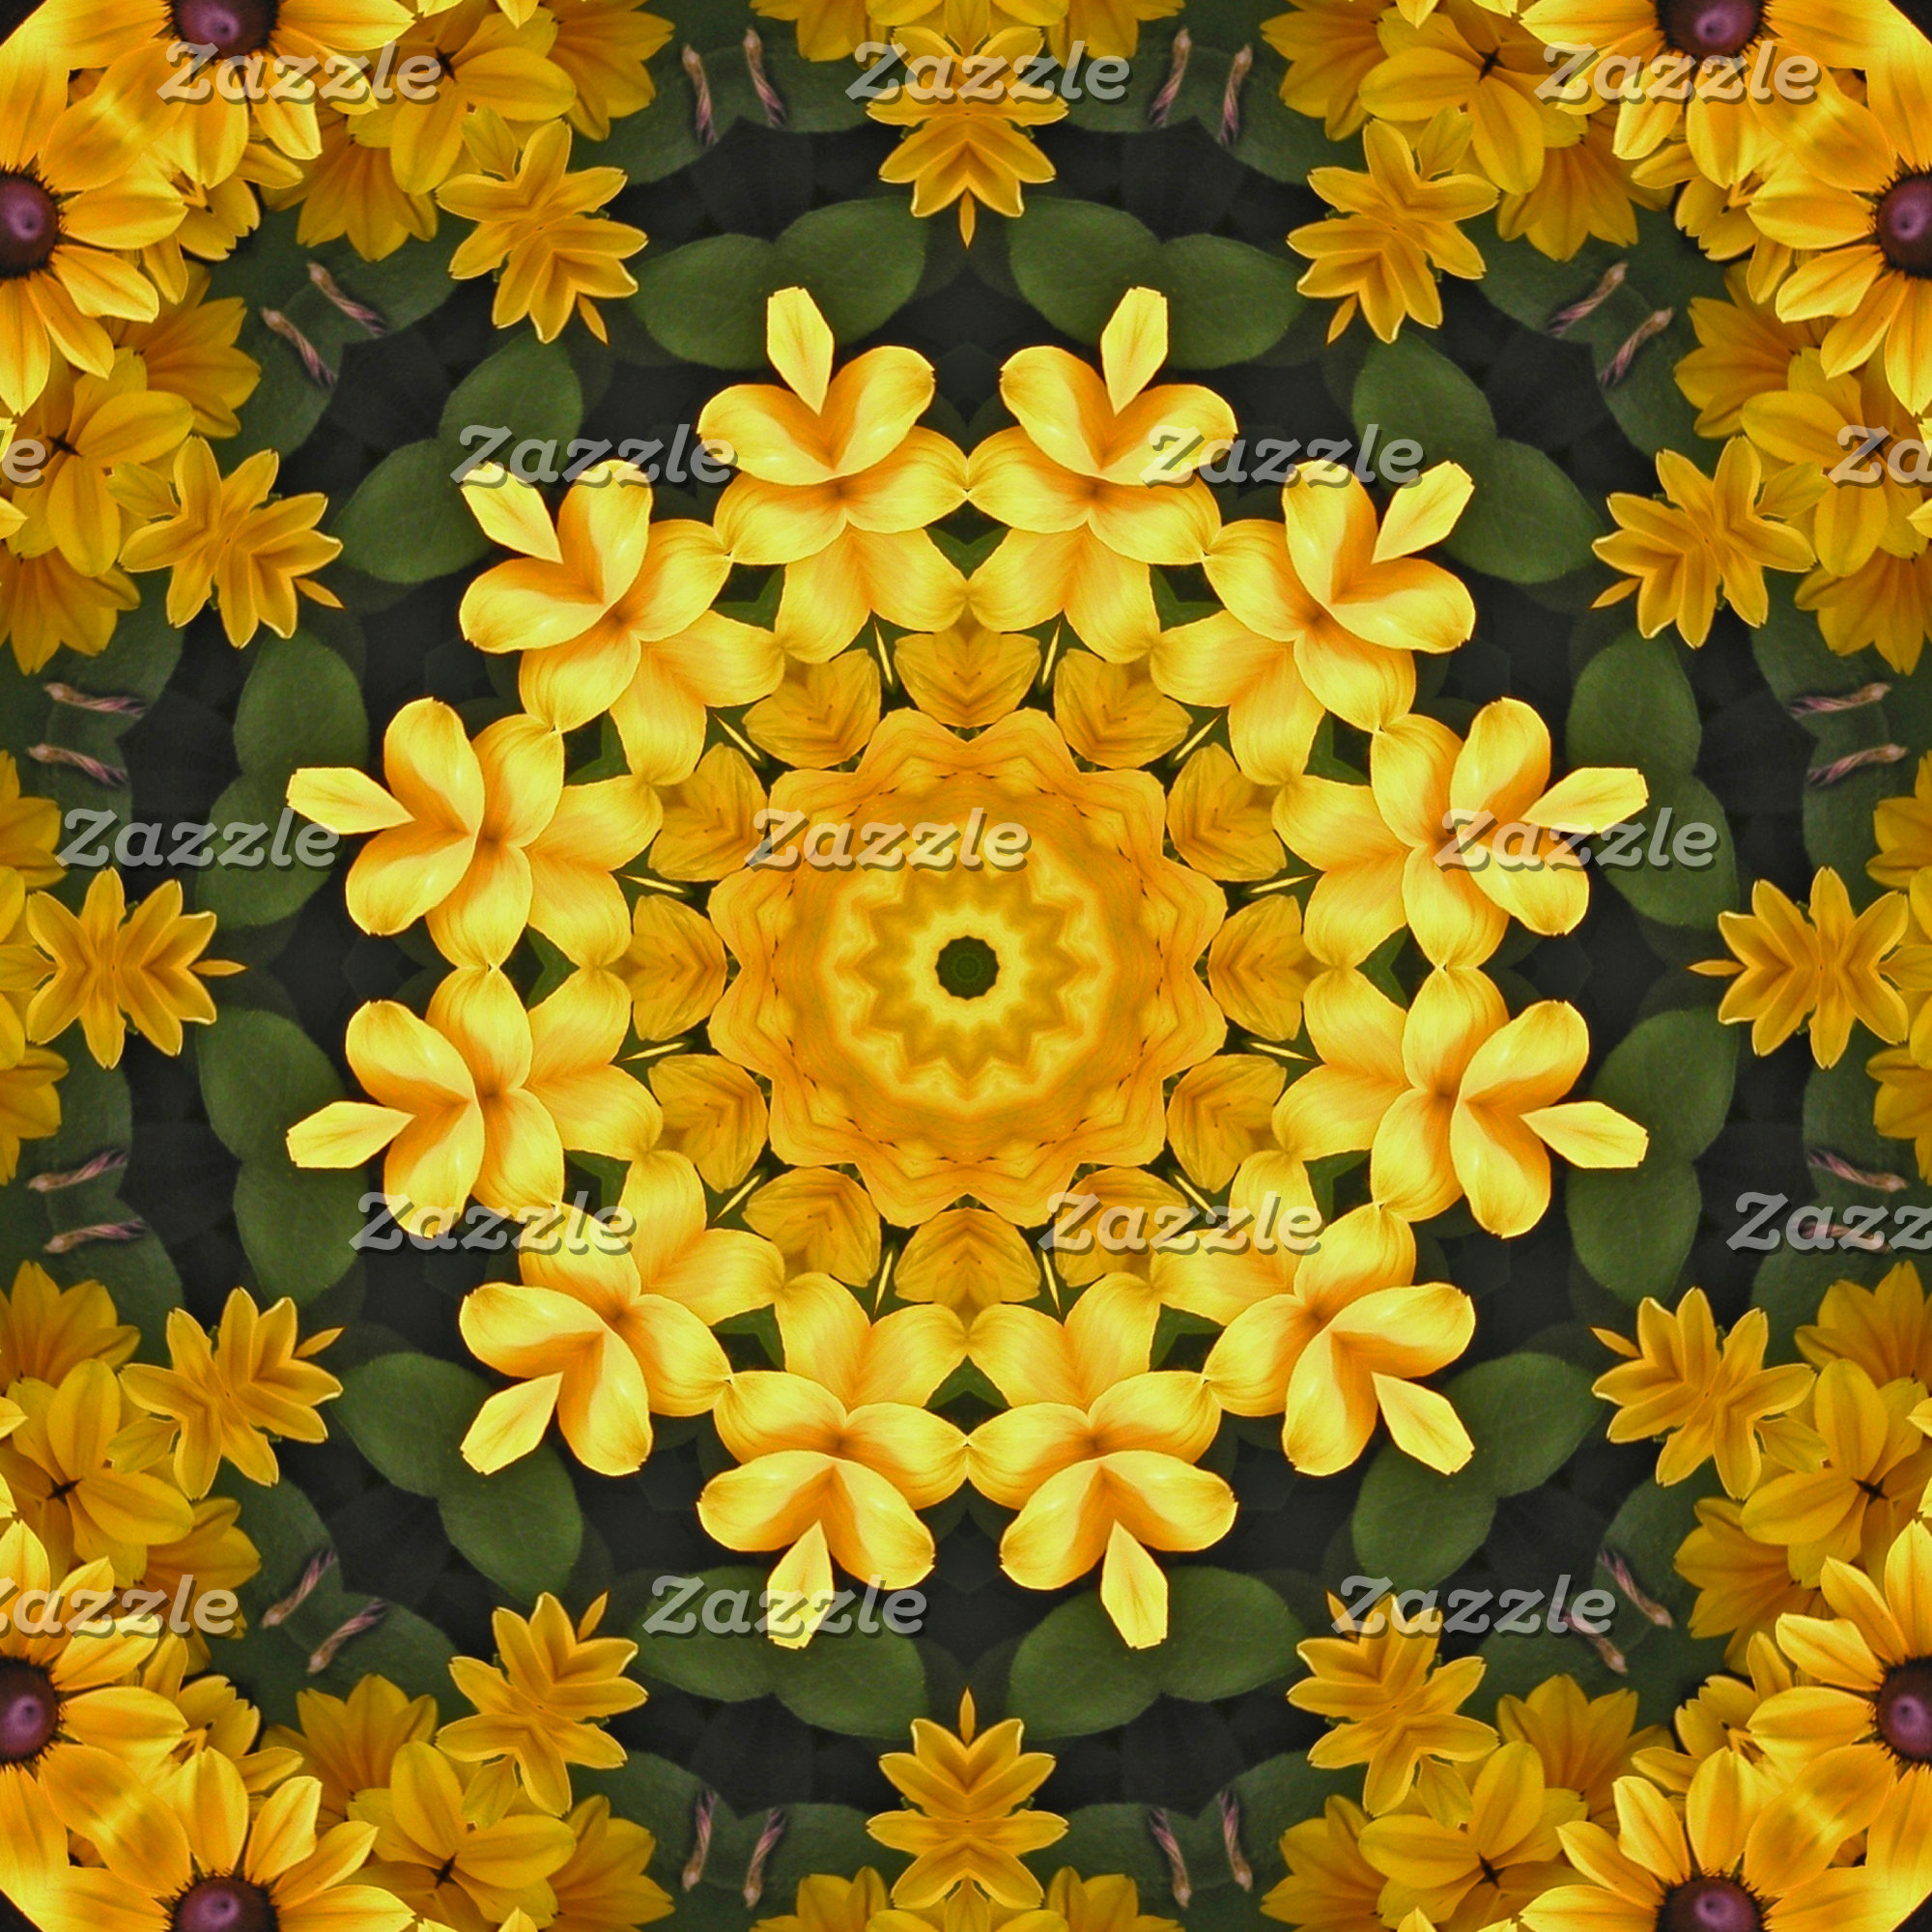 _Fall Flower Mandalas